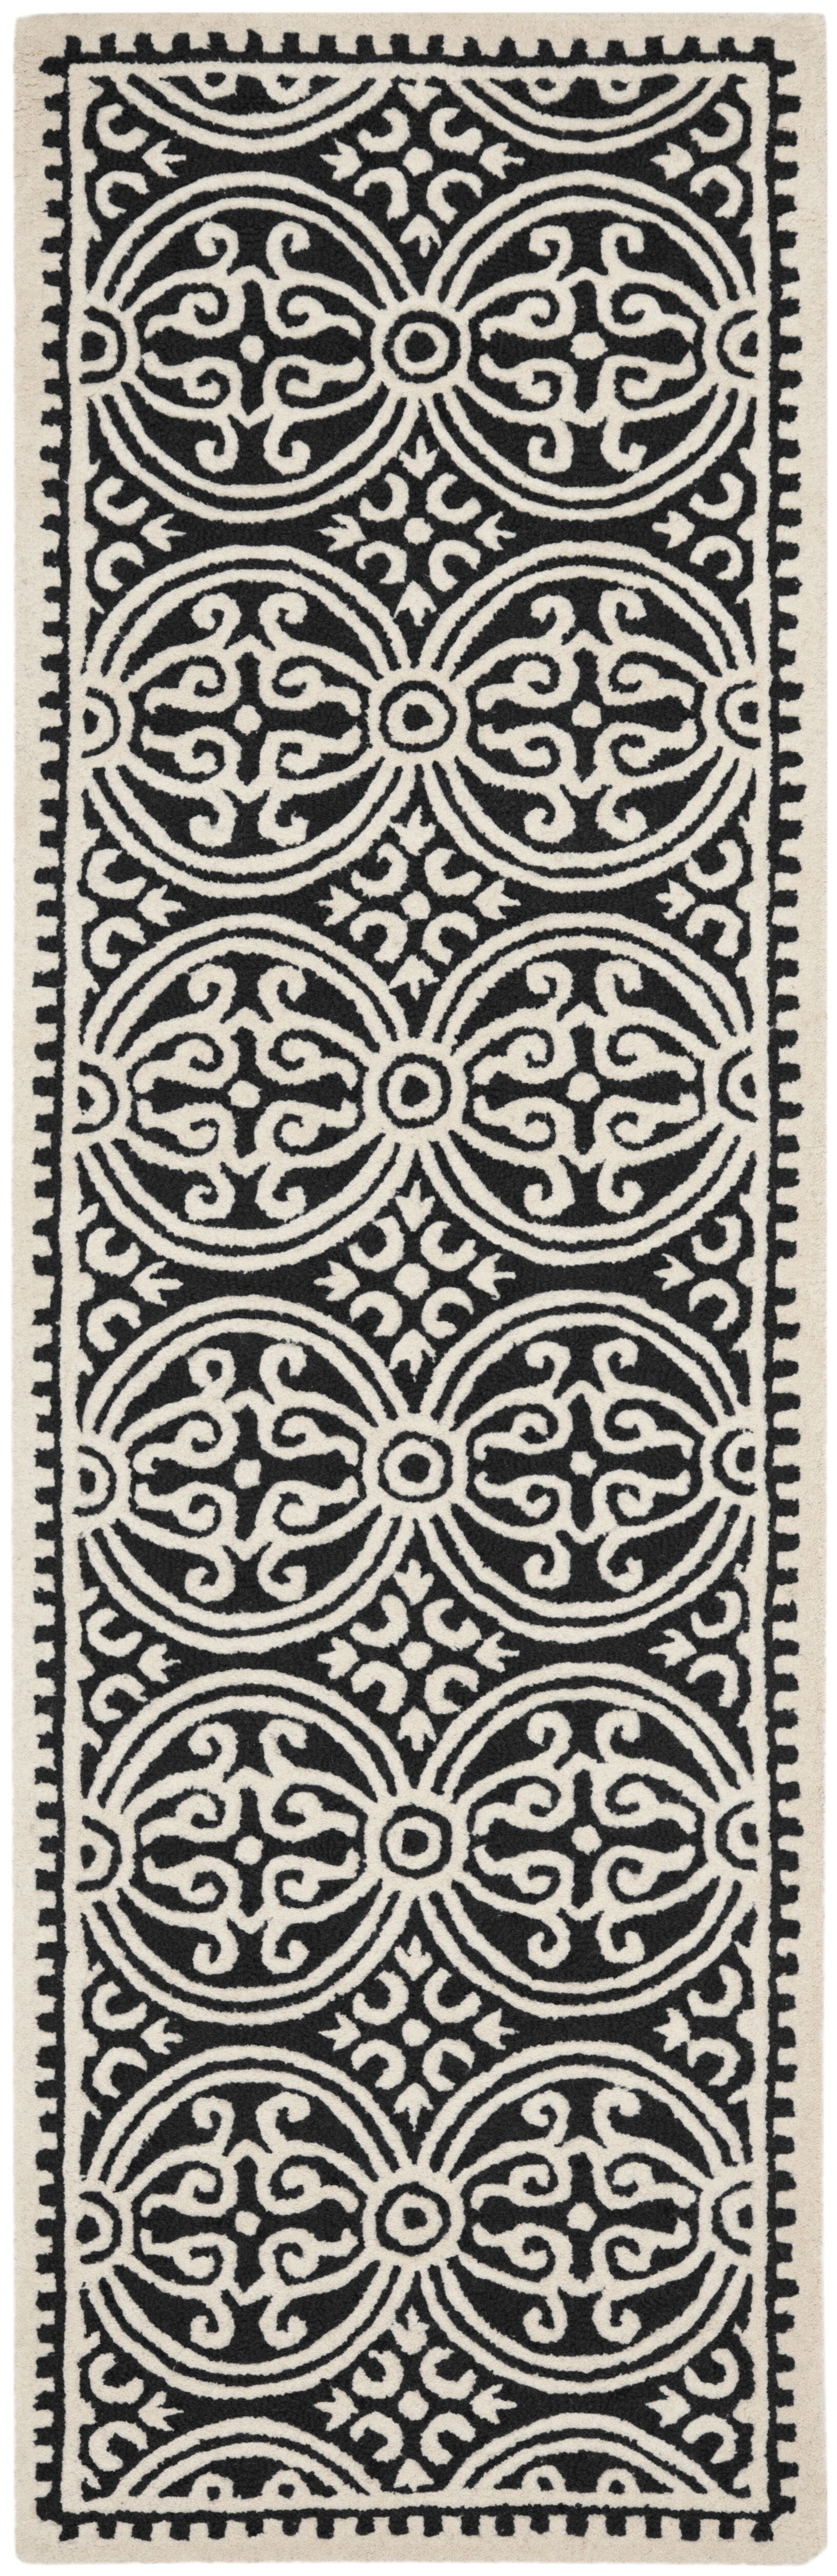 Fairburn Black/Ivory Area Rug Rug Size: Runner 2'6